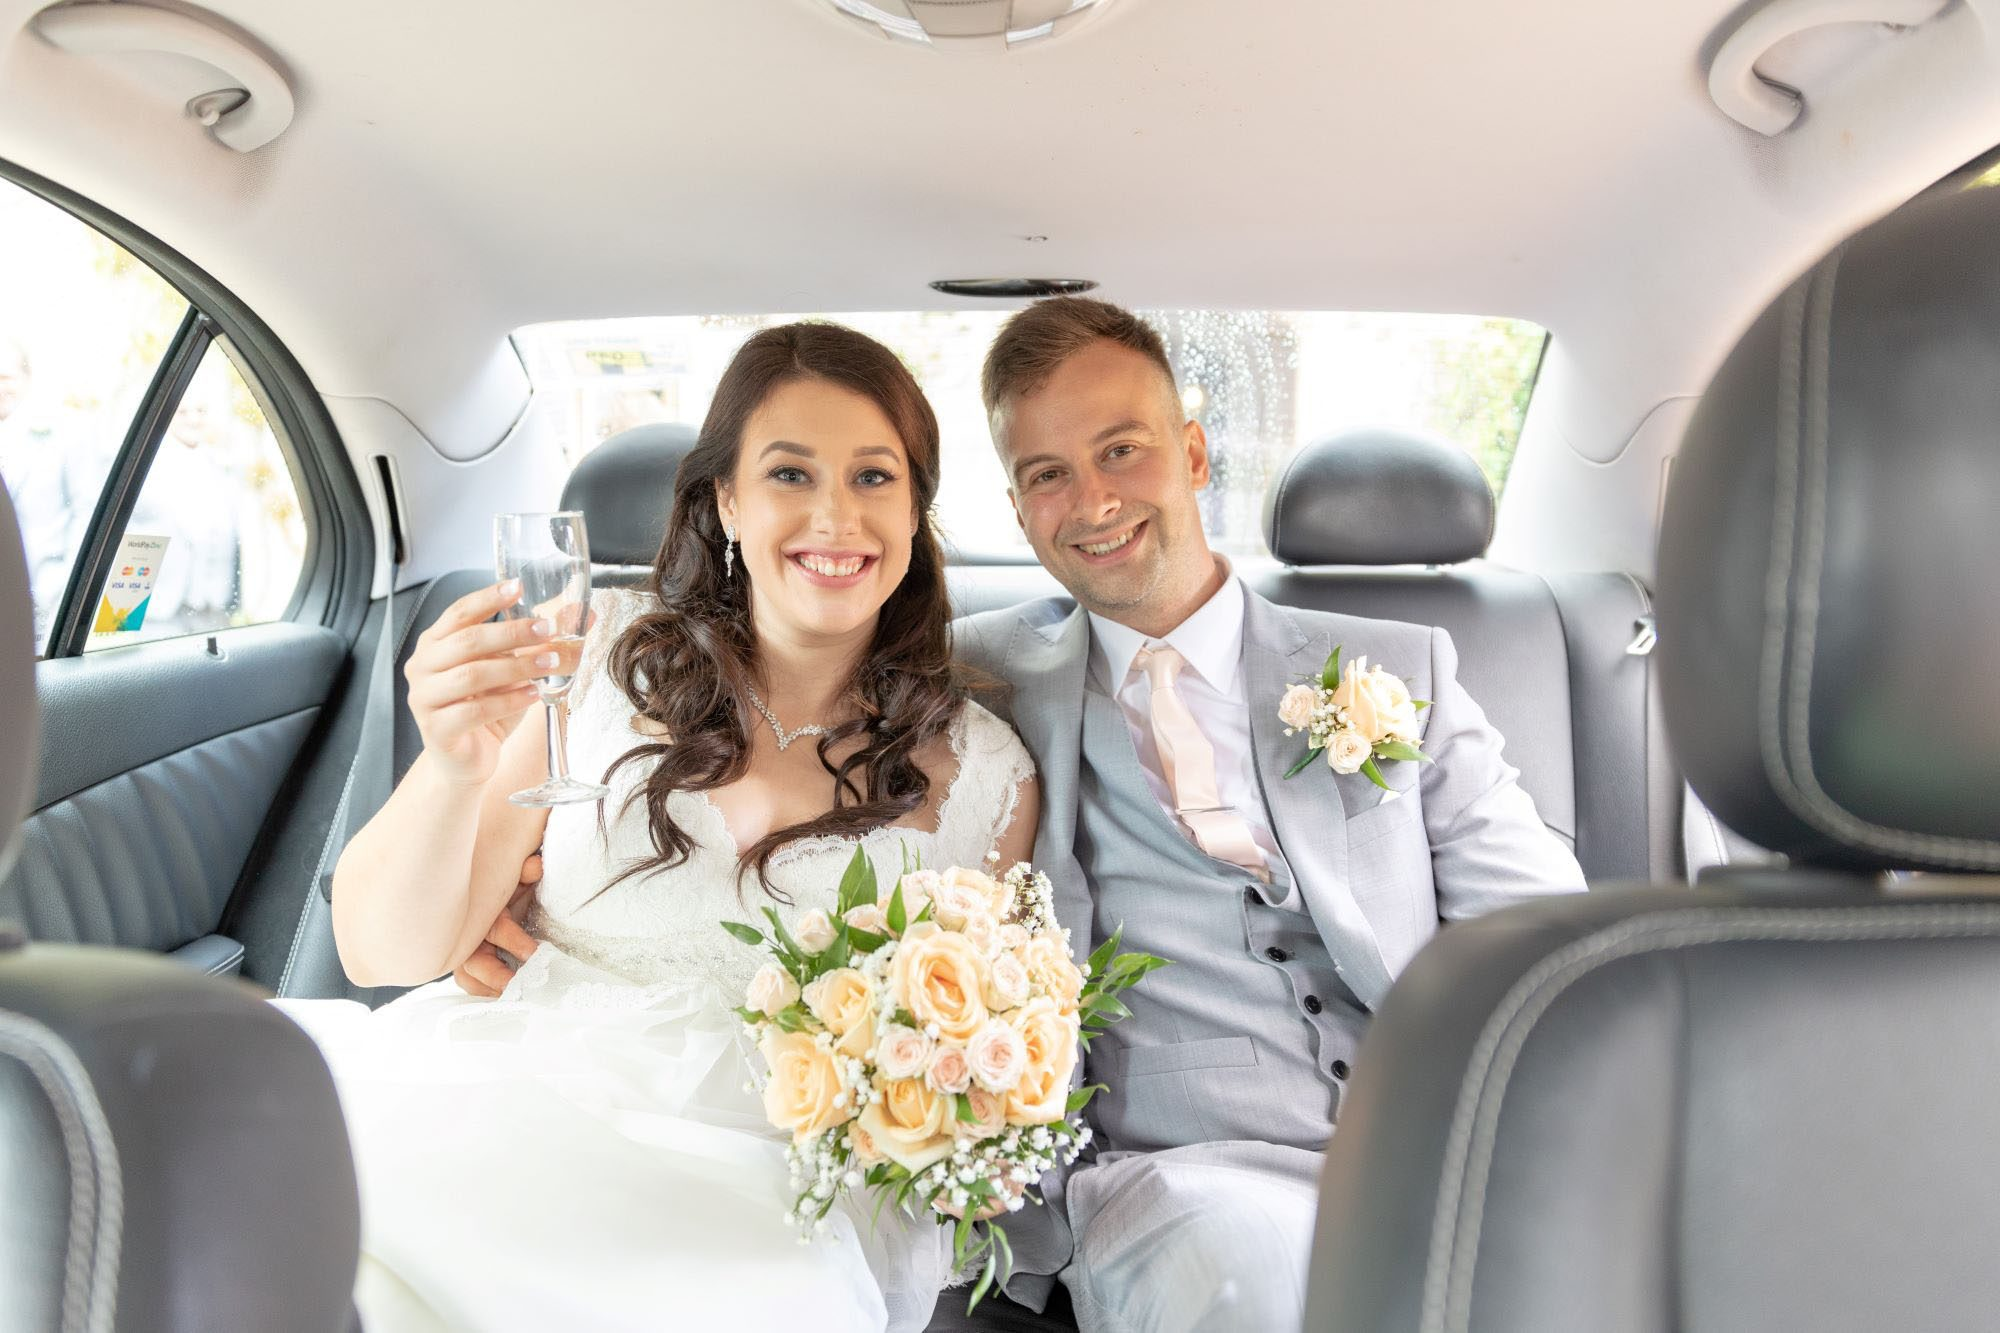 54 bride groom bridal car drink champagne cherwell boathouse venue oxford wedding photography